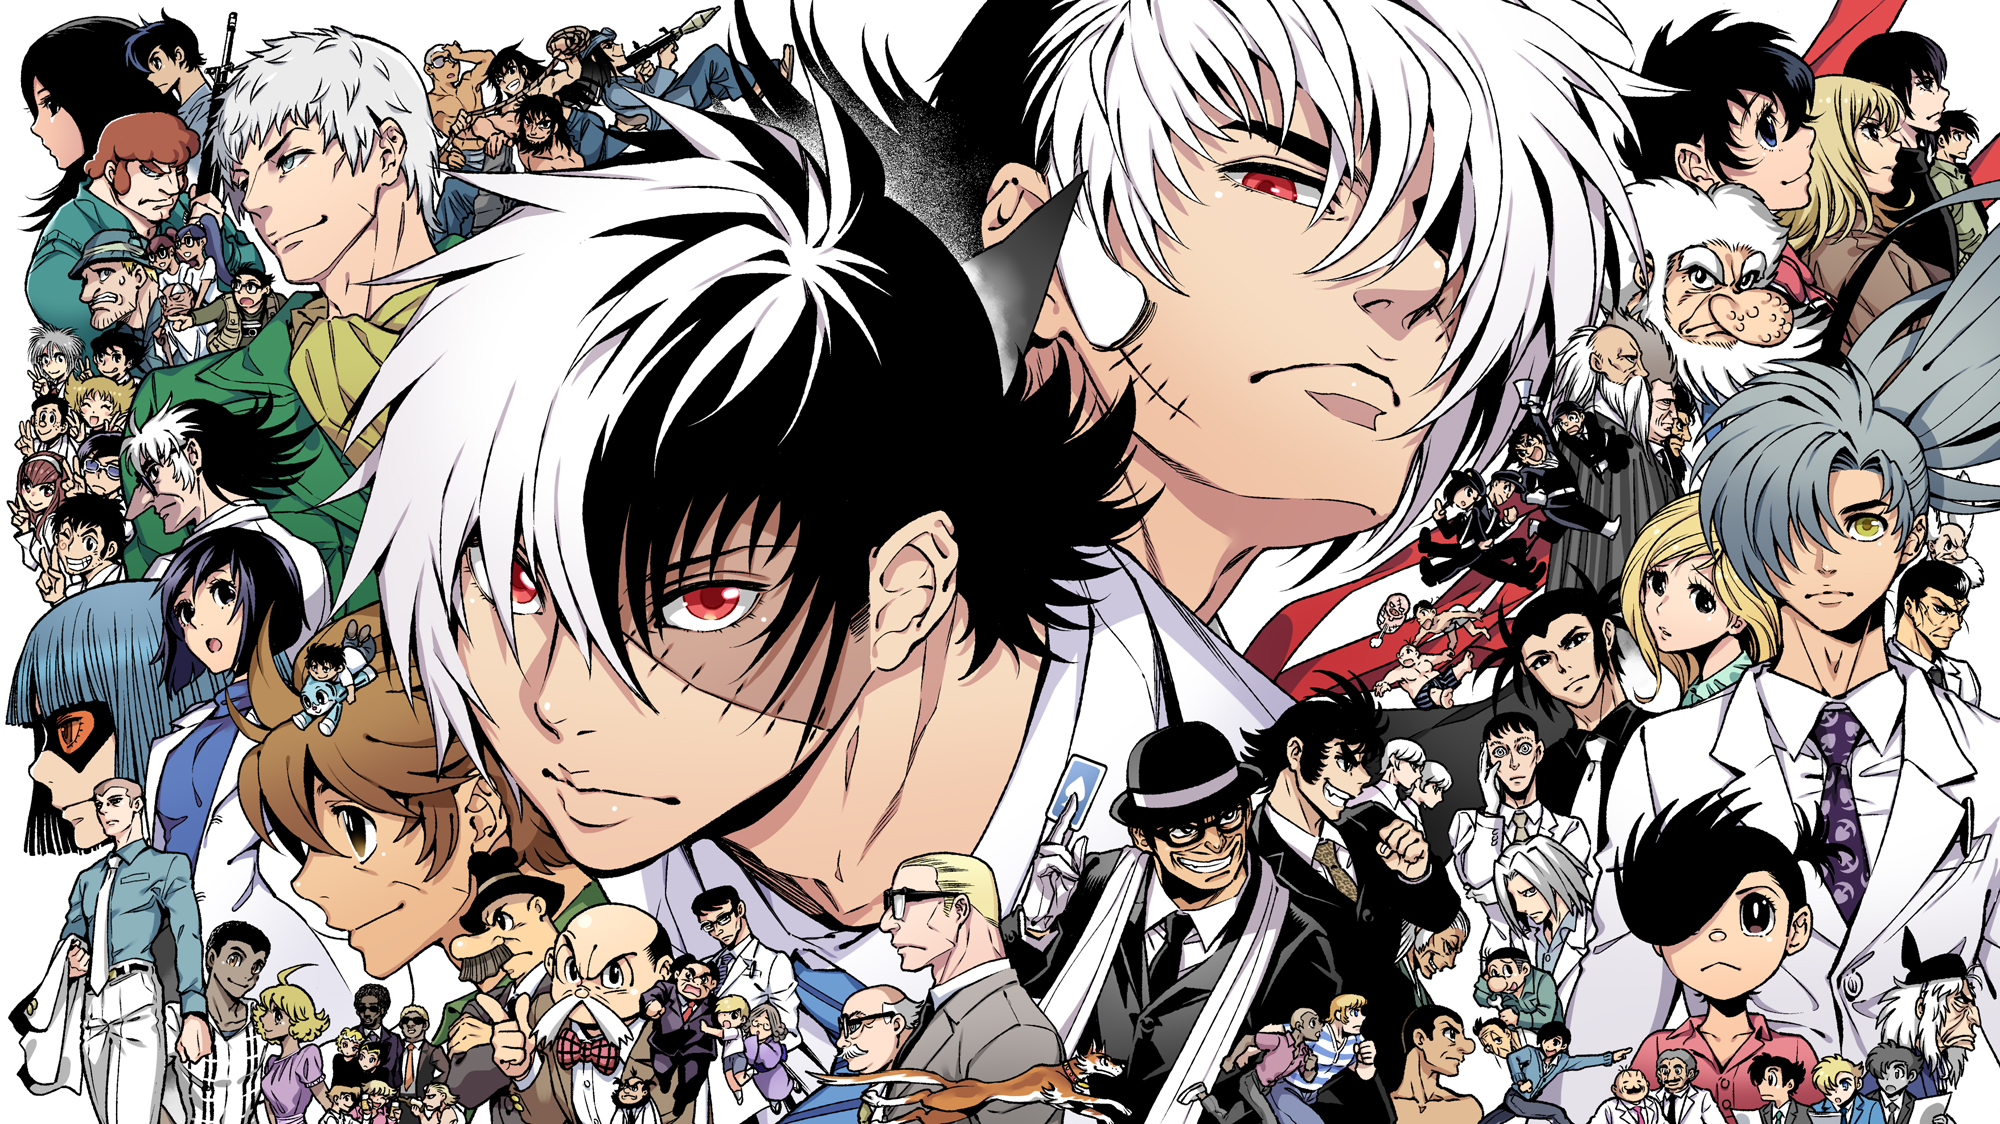 Unduh 9000+ Wallpaper Black Jack HD Gratis